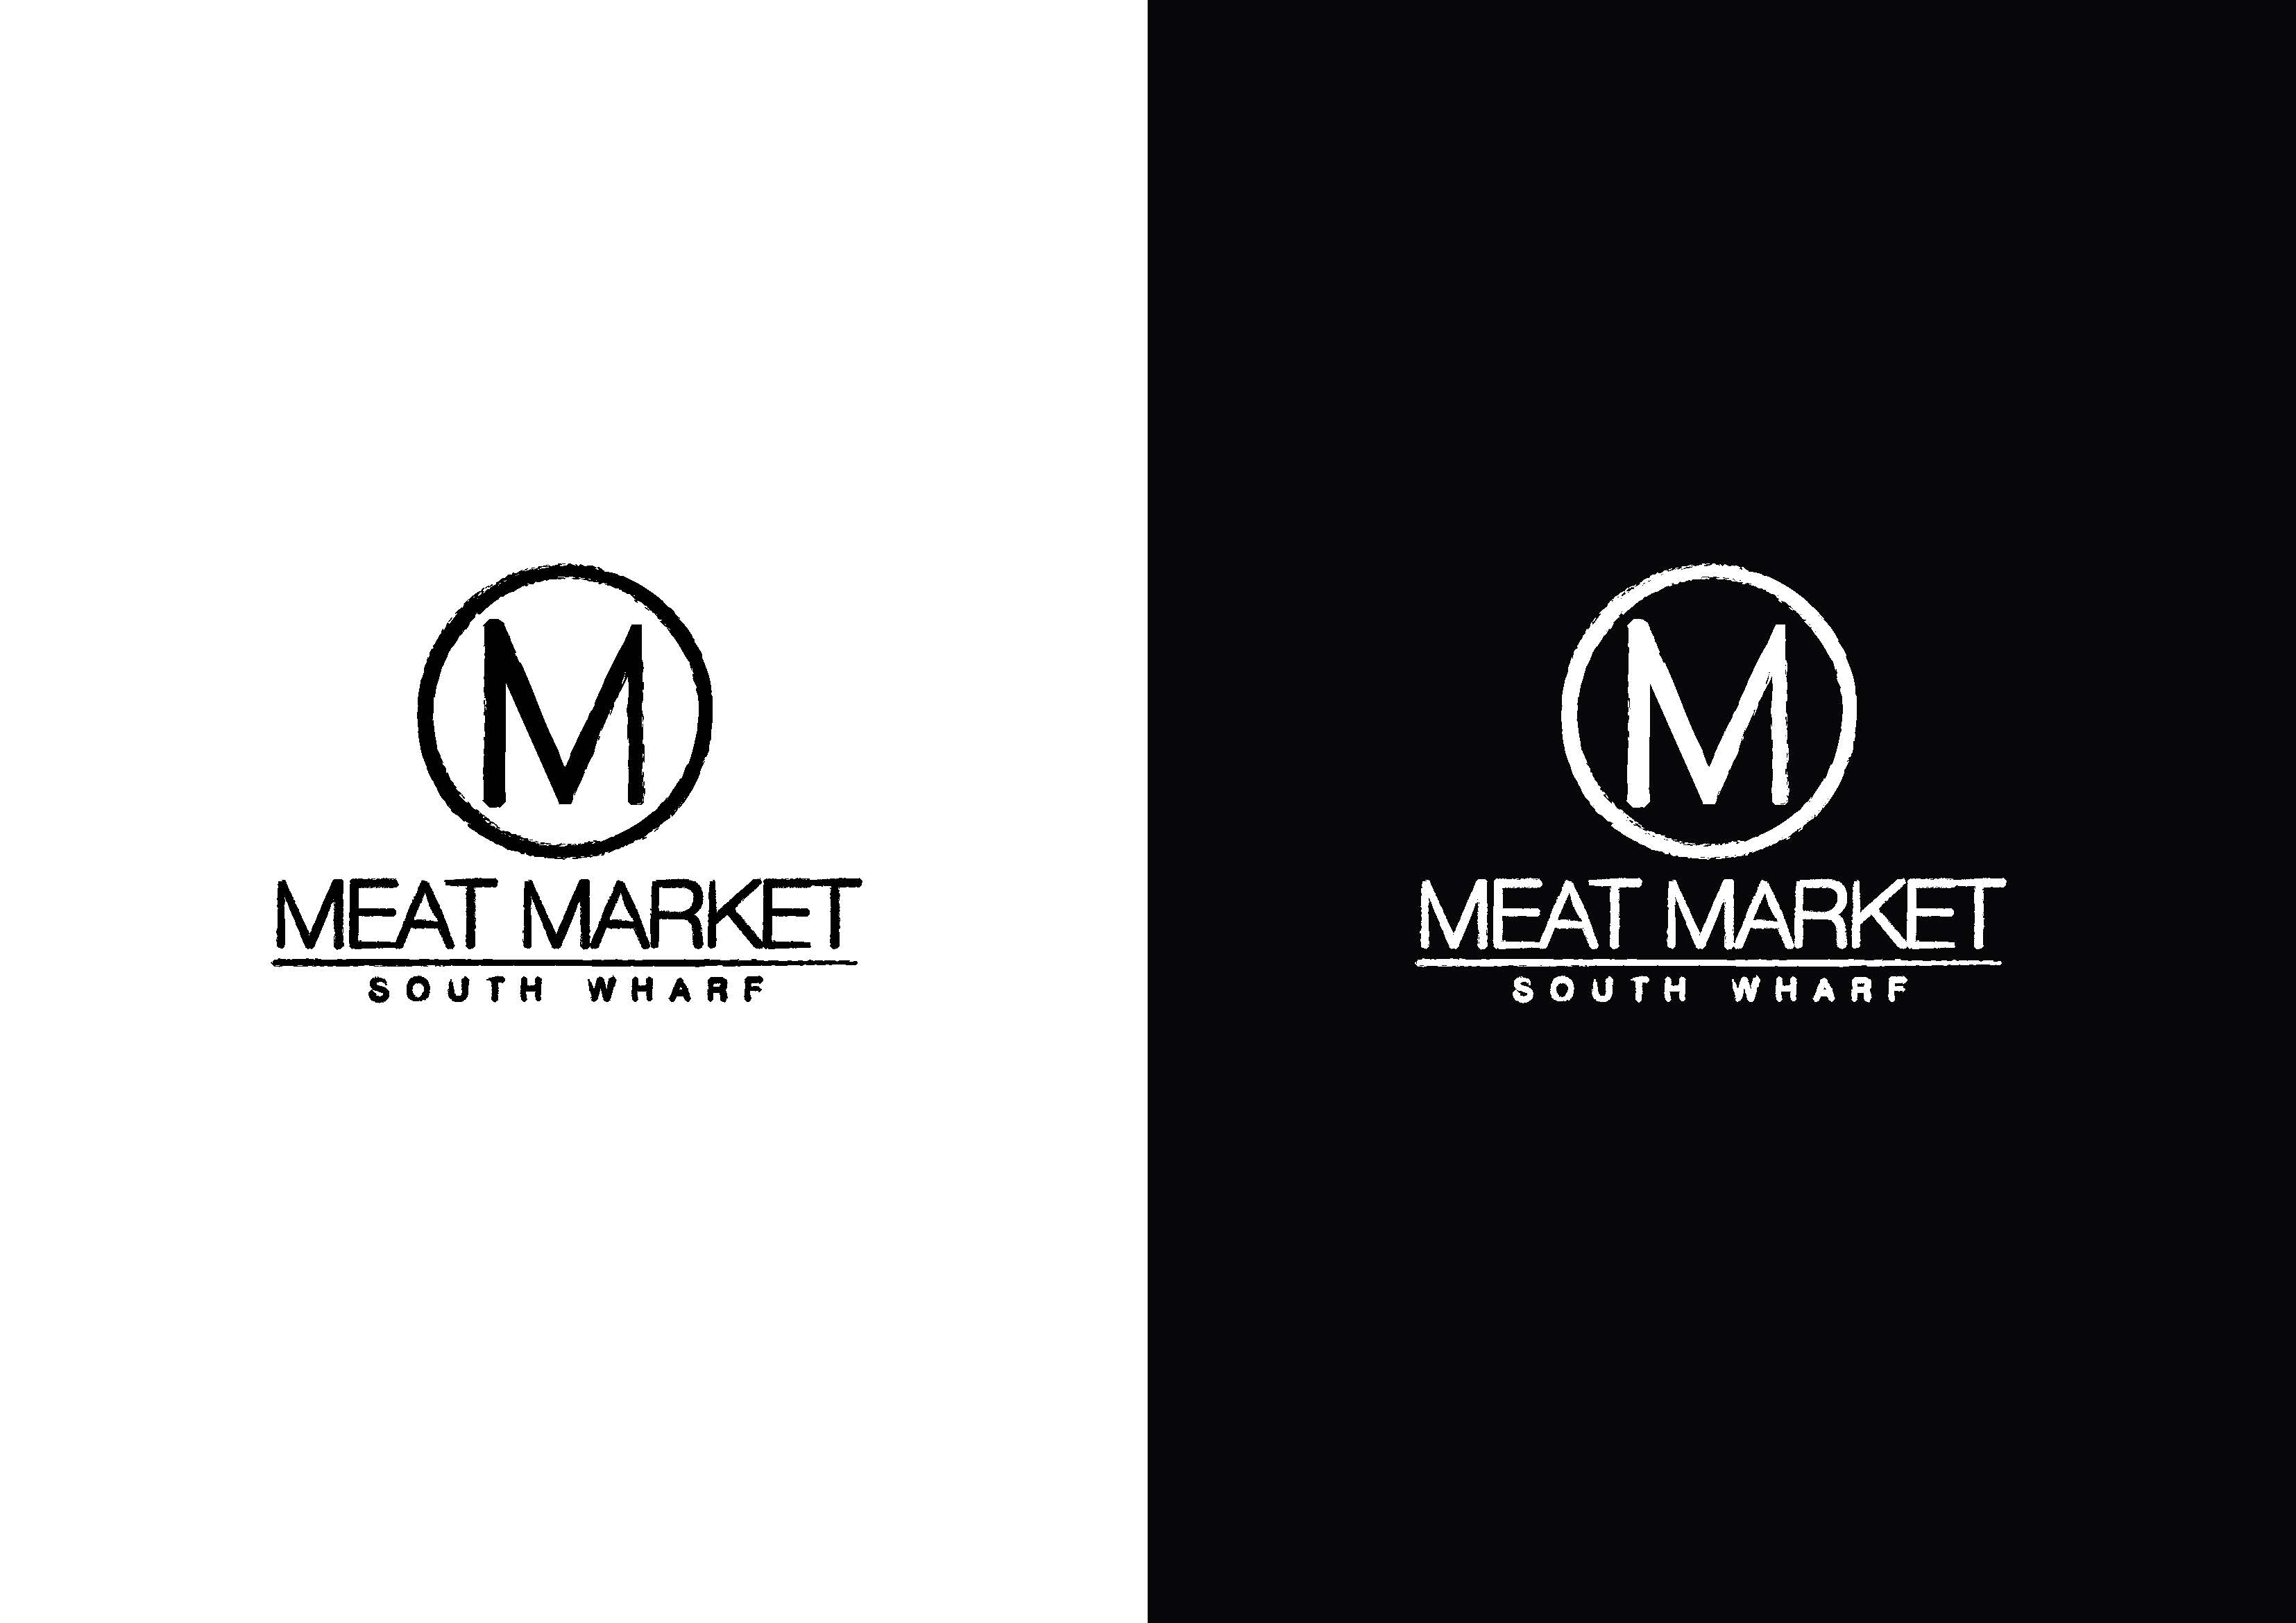 Meat Market South Wharf